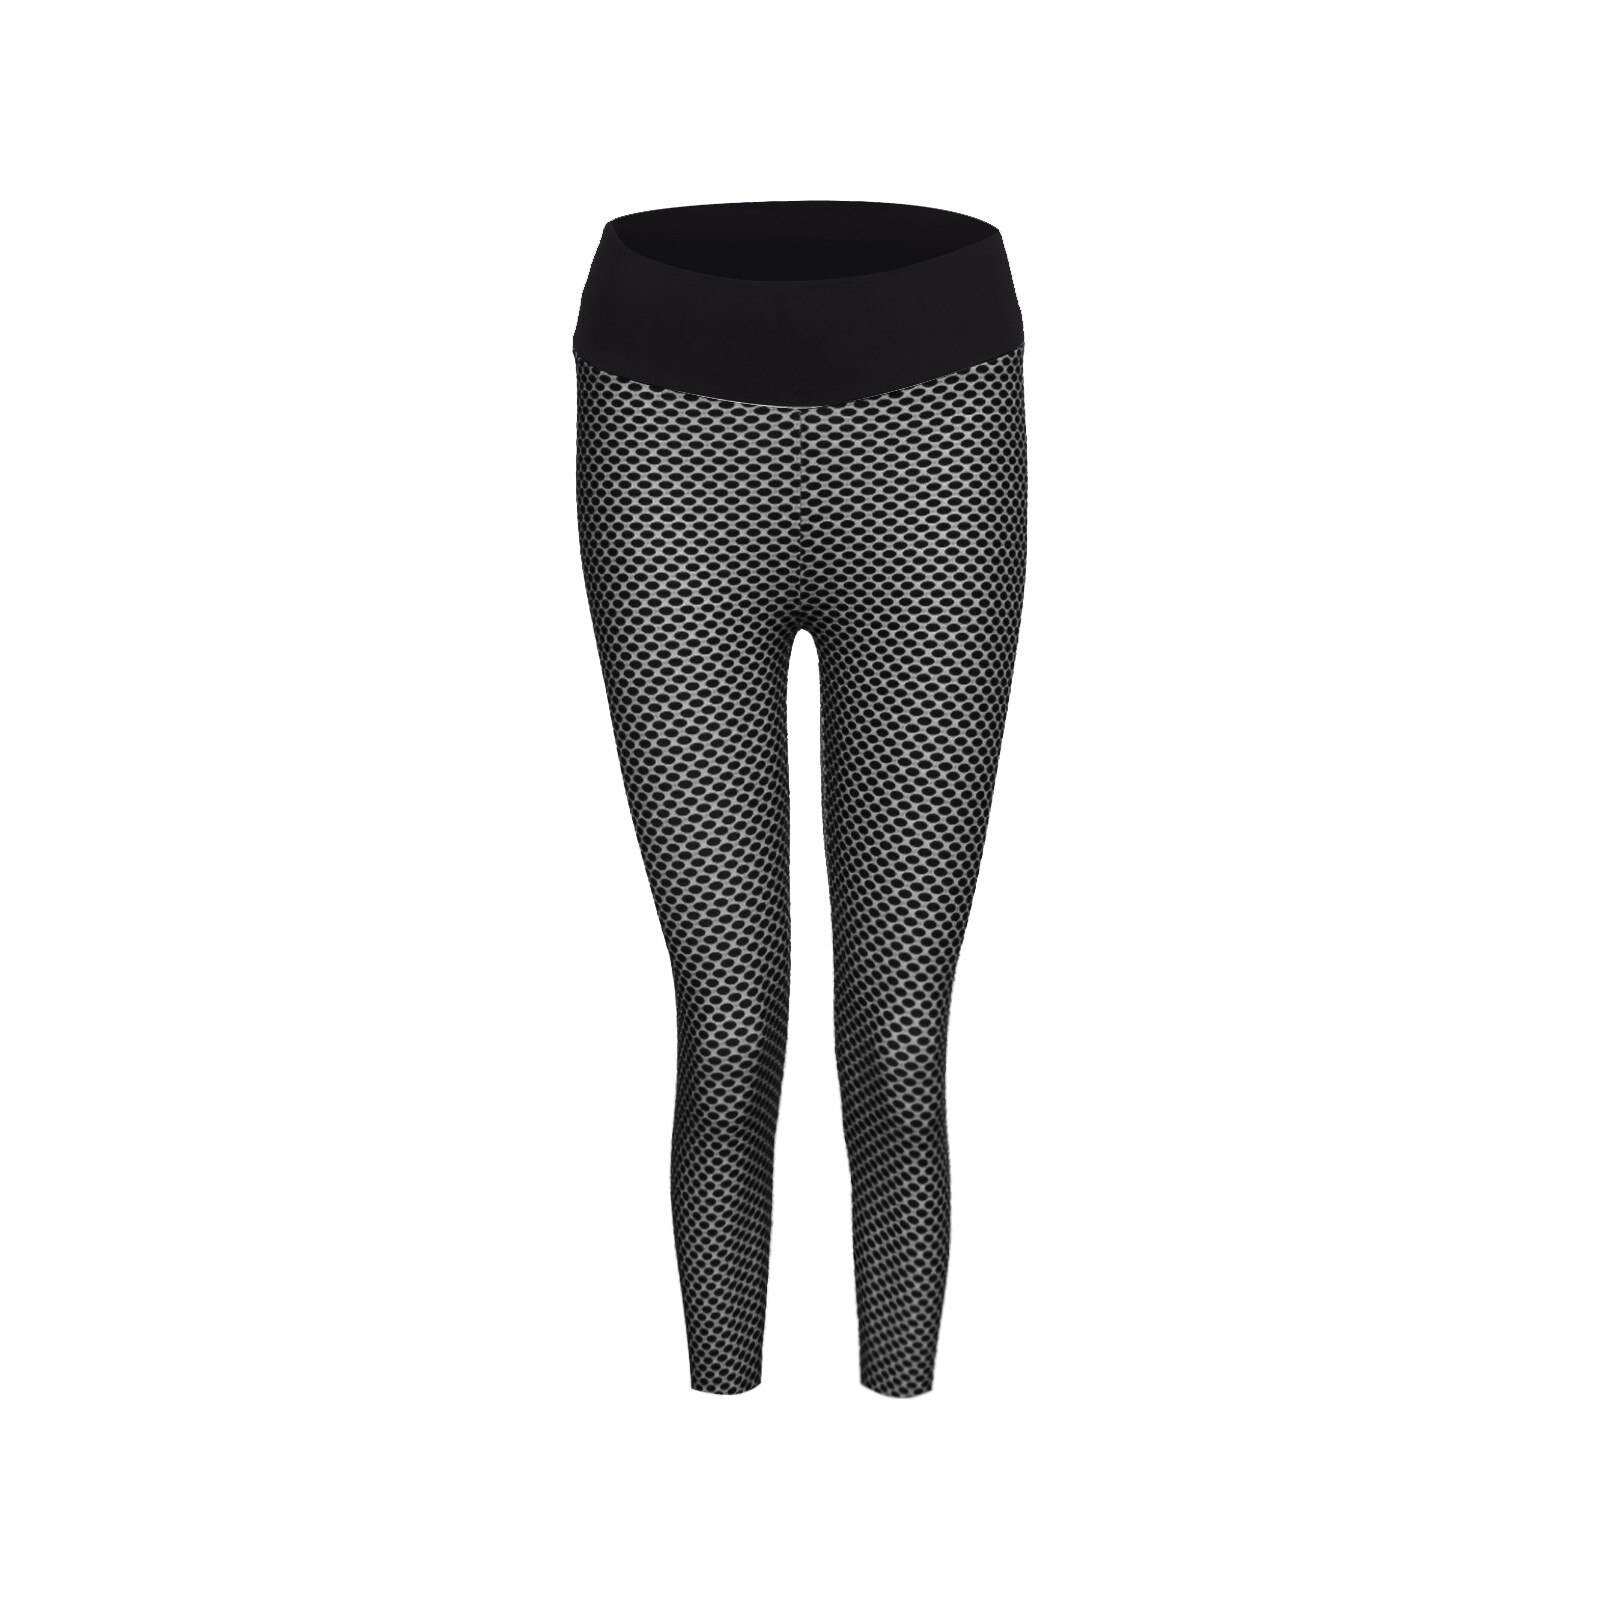 Women's Pants Stretch Fitness Running Gym Sports Pockets Active Tight Stretch Capris Cropped High Waist Elasticity Trousers R2